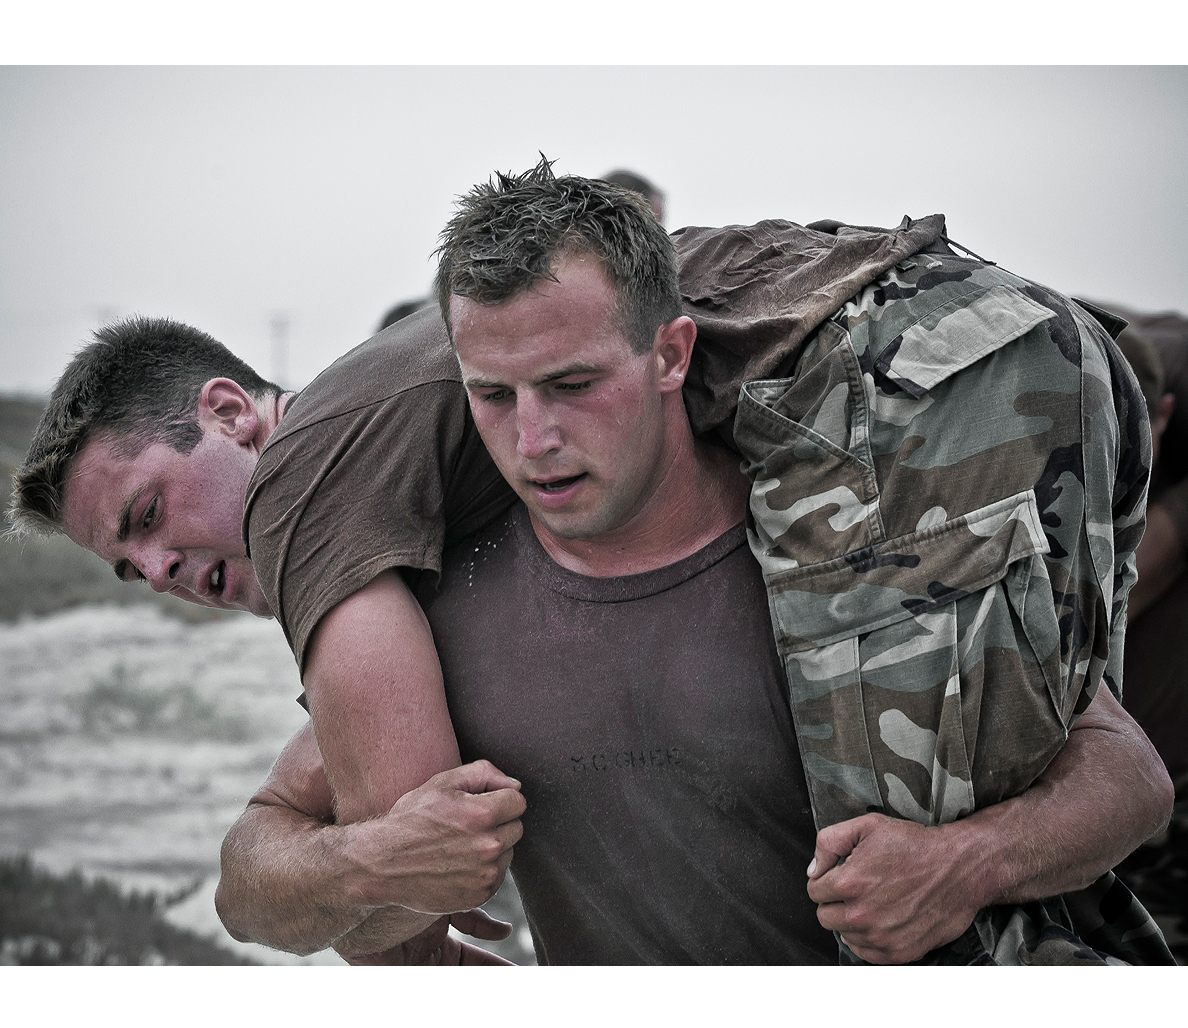 The Most Brutal Obstacles That Elite Military Guys Must Survive